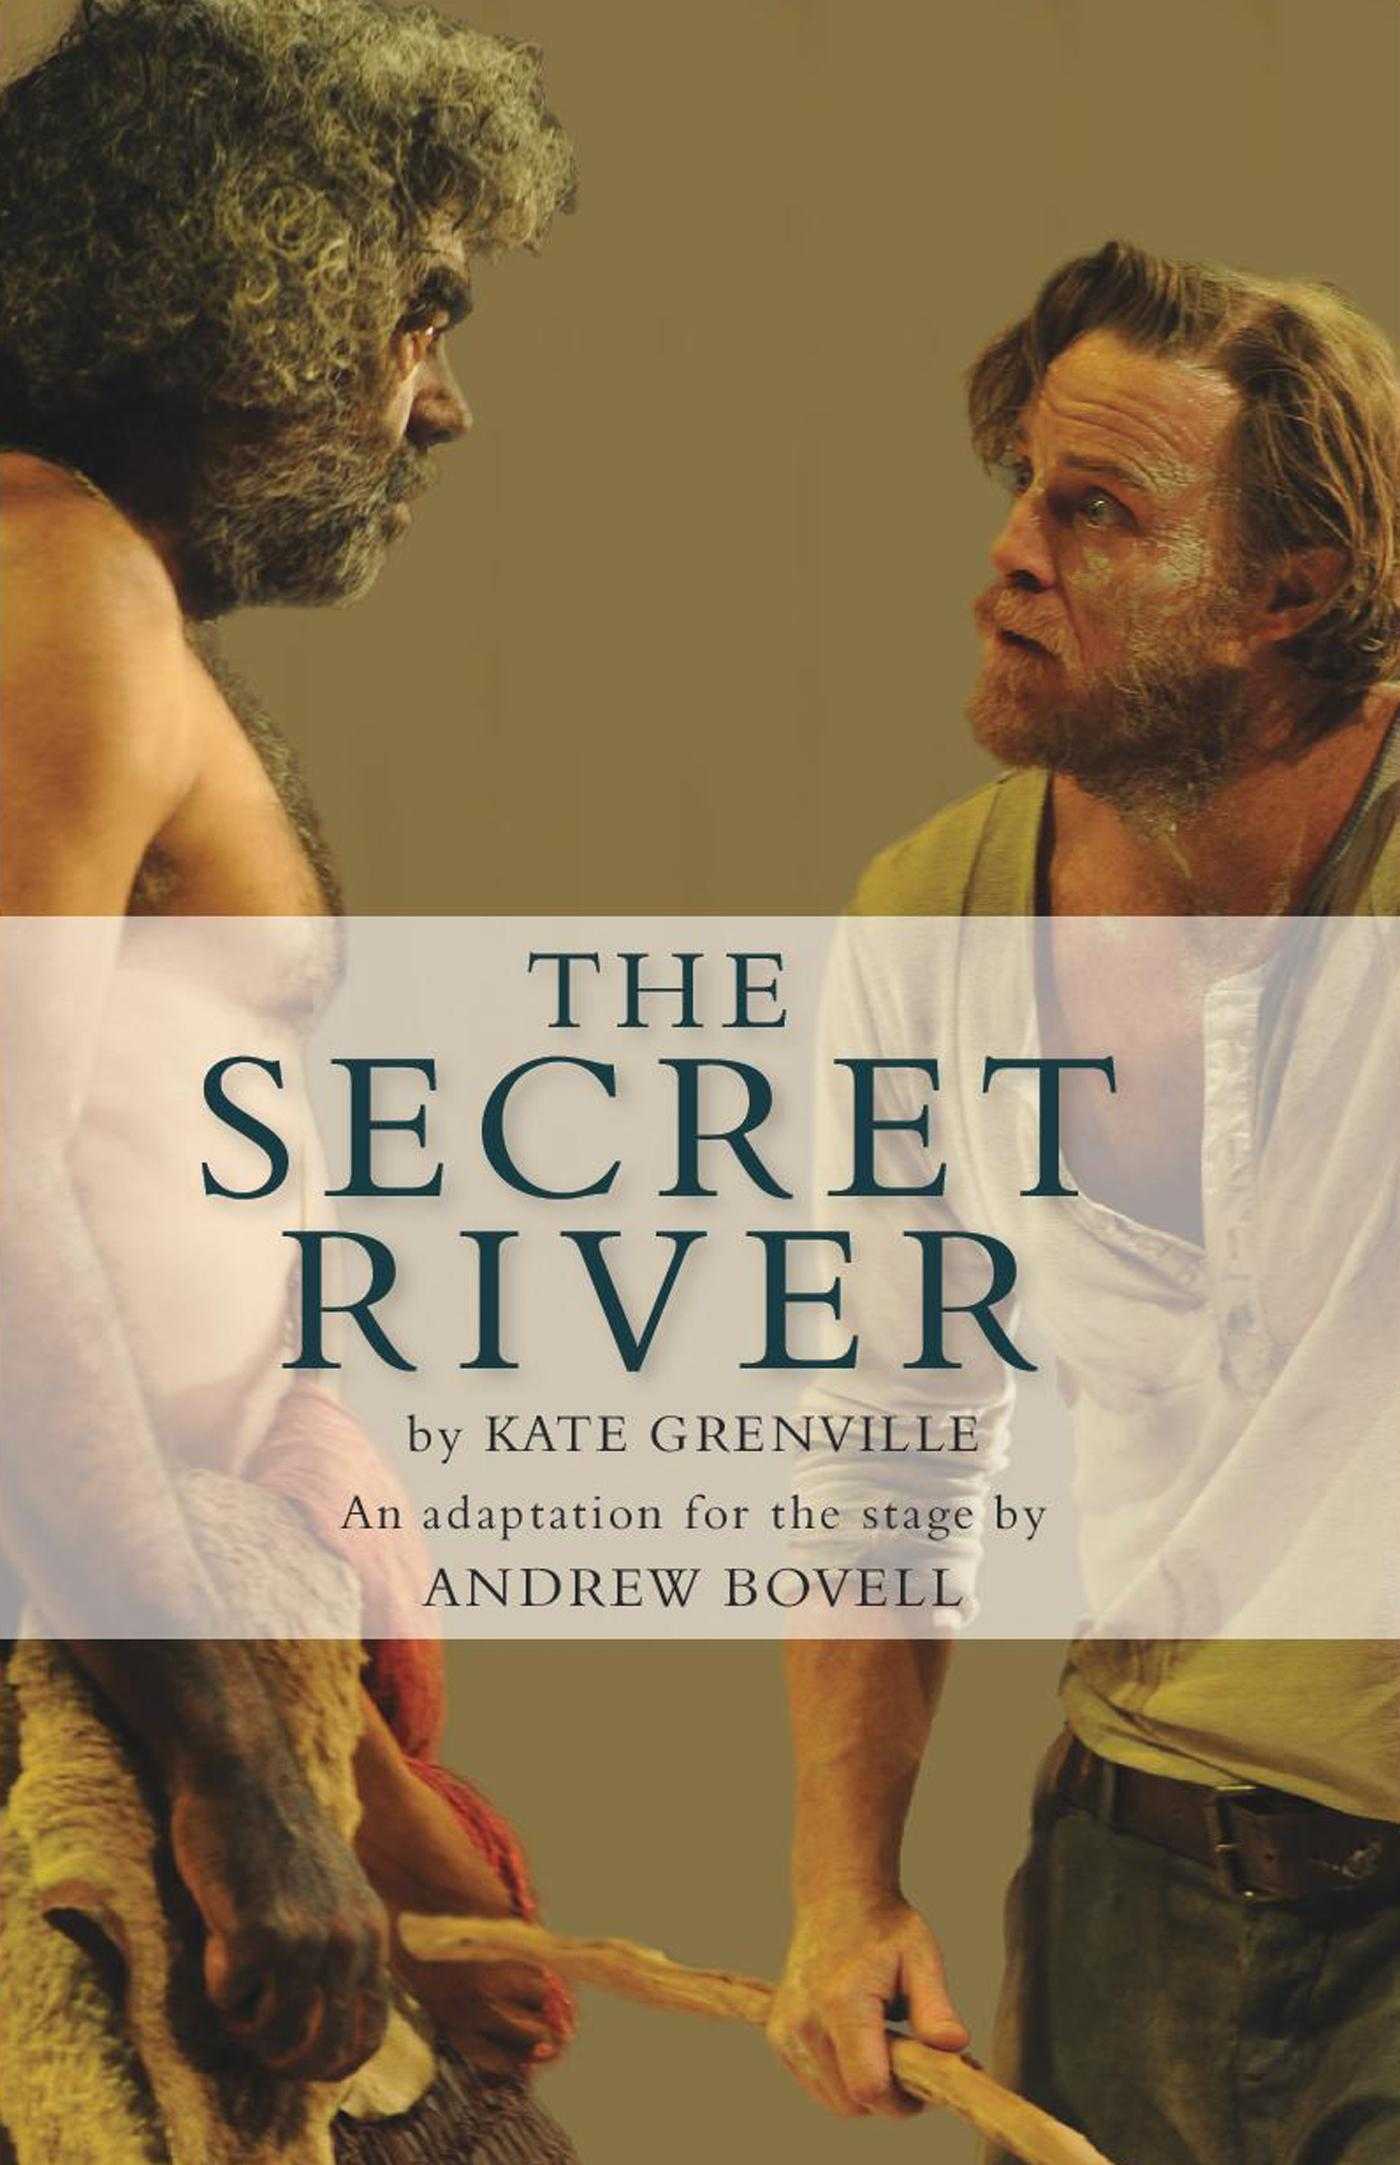 the secret river essay Free essay: the secret river essay characters in the text the secret river by kate grenville represent a variation of attitudes and views towards the the ganga, especially, is the river of india, beloved of her people, round which are intertwined her memories, her hopes and fears, her songs of.